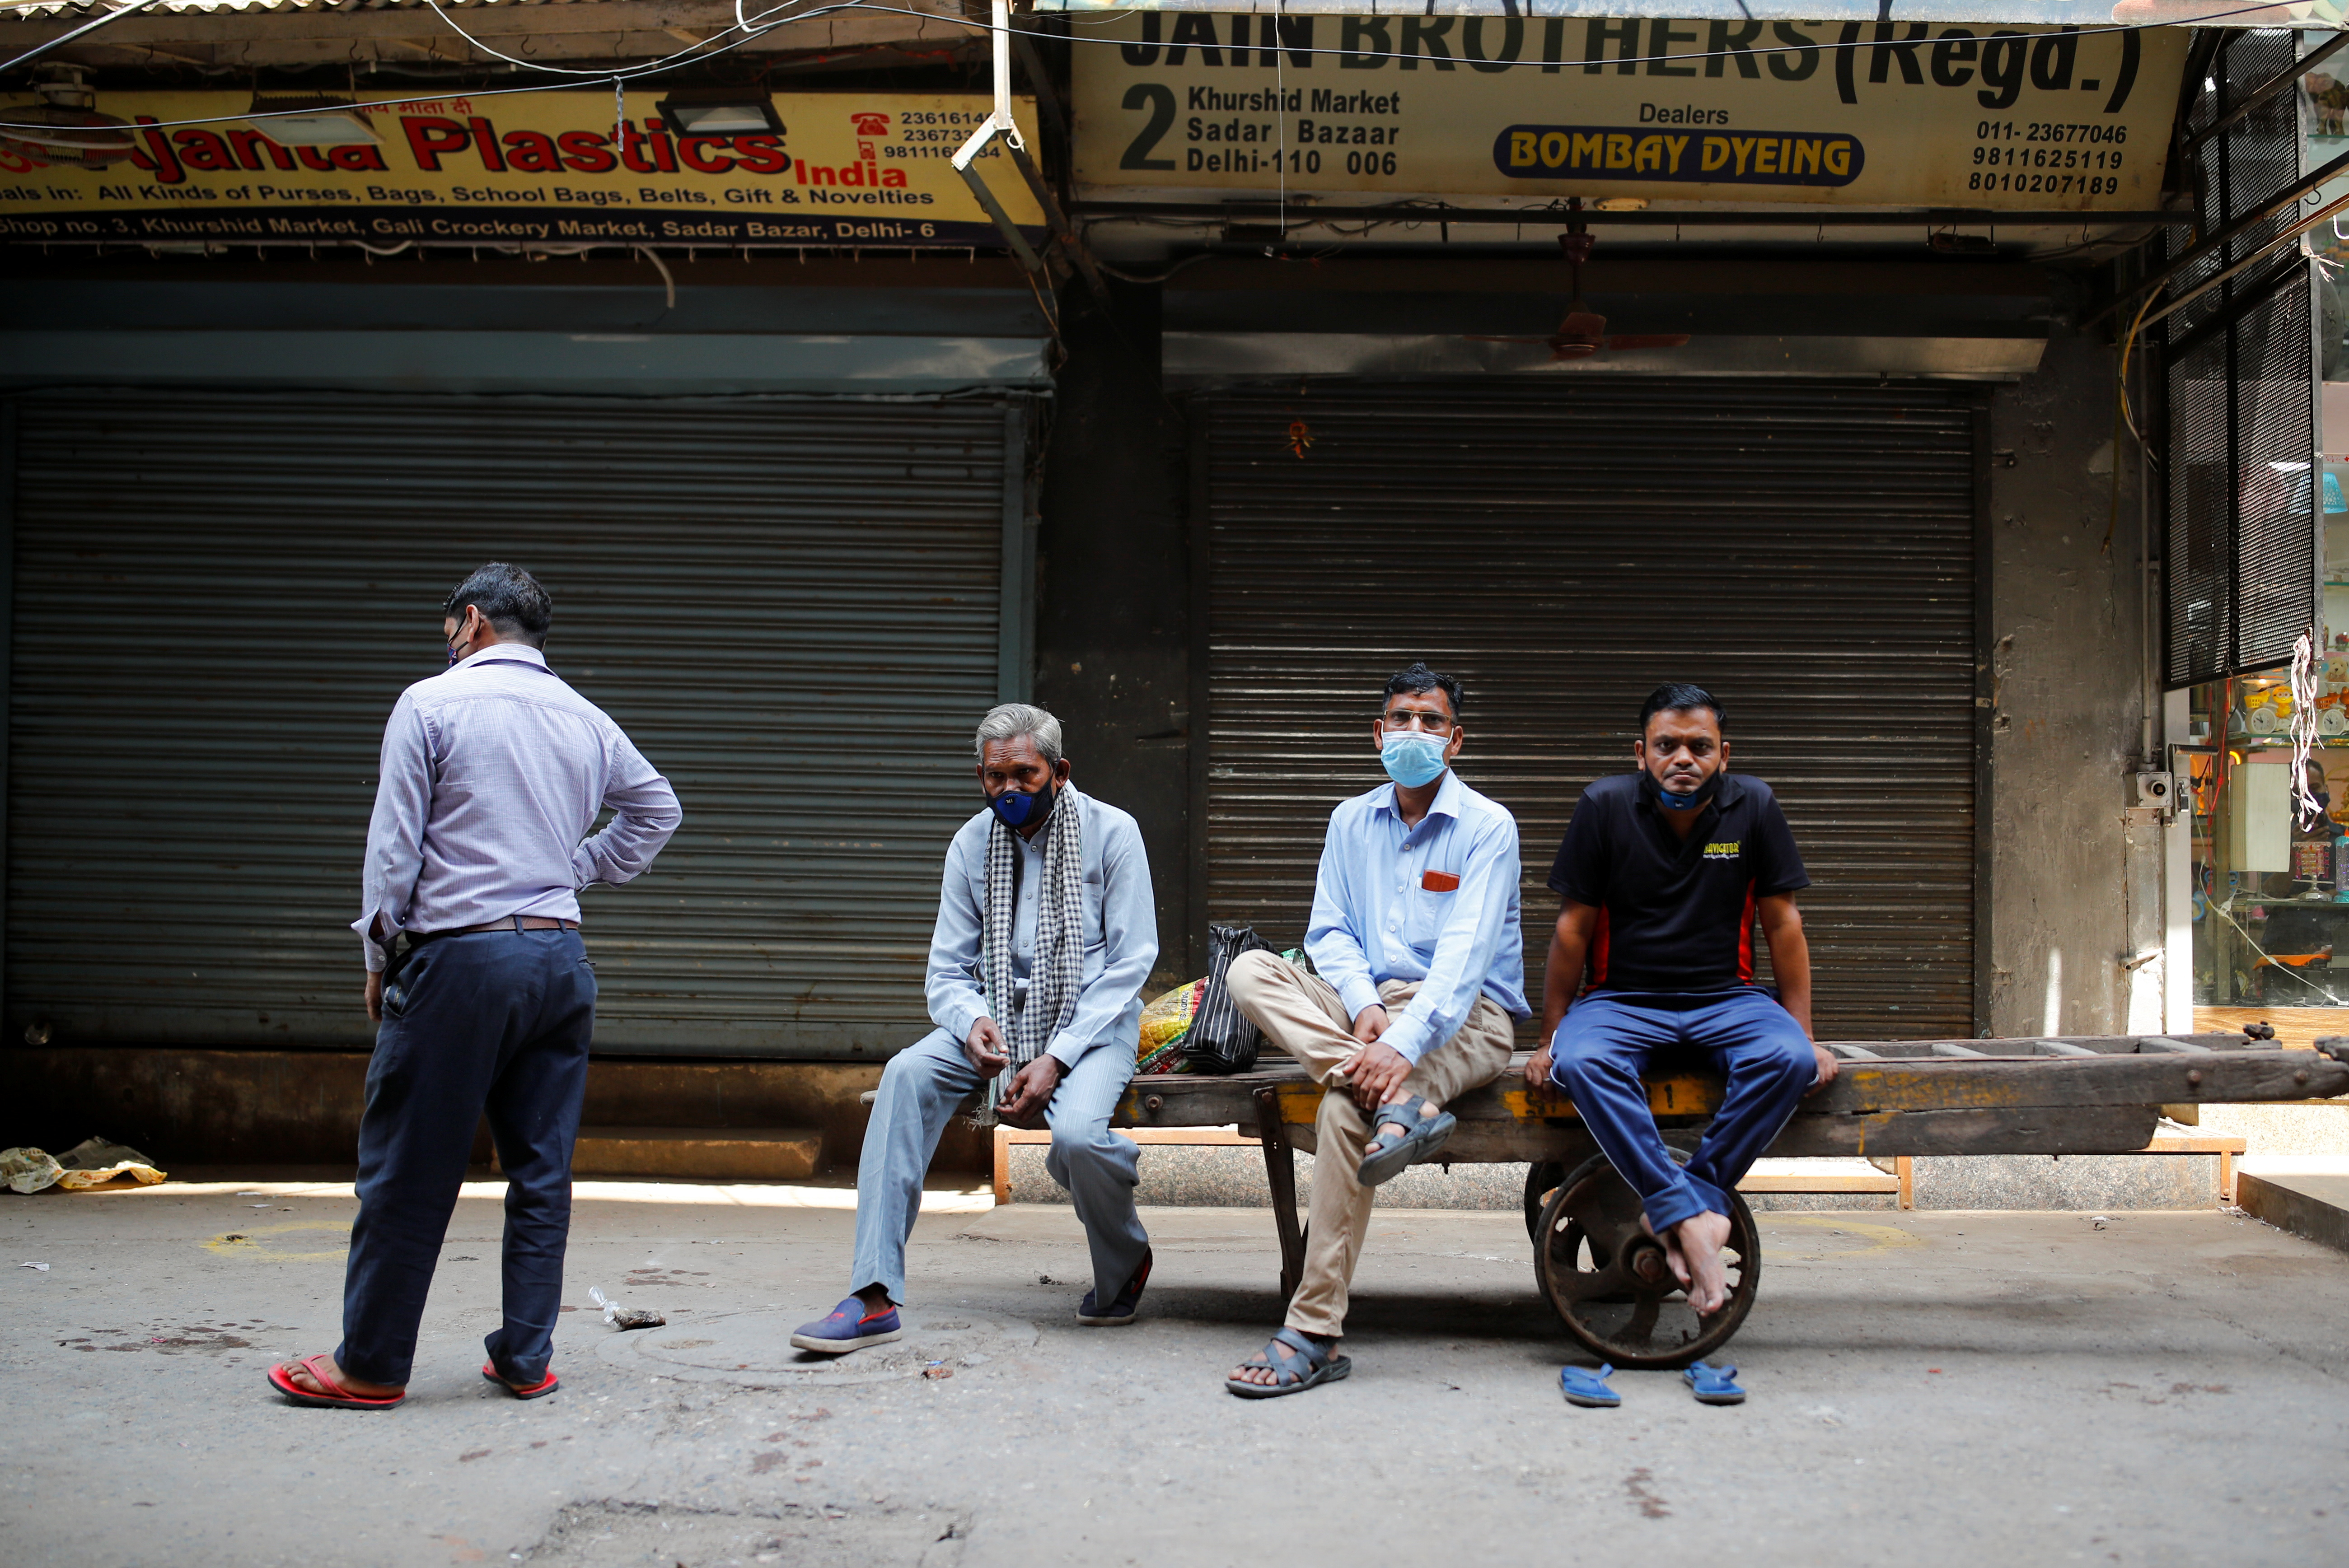 Shopkeepers wait to open their stores at a market area after authorities eased lockdown restrictions that were imposed to slow down the spread of the coronavirus disease (COVID-19), in New Delhi, India, June 7, 2021. REUTERS/Adnan Abidi